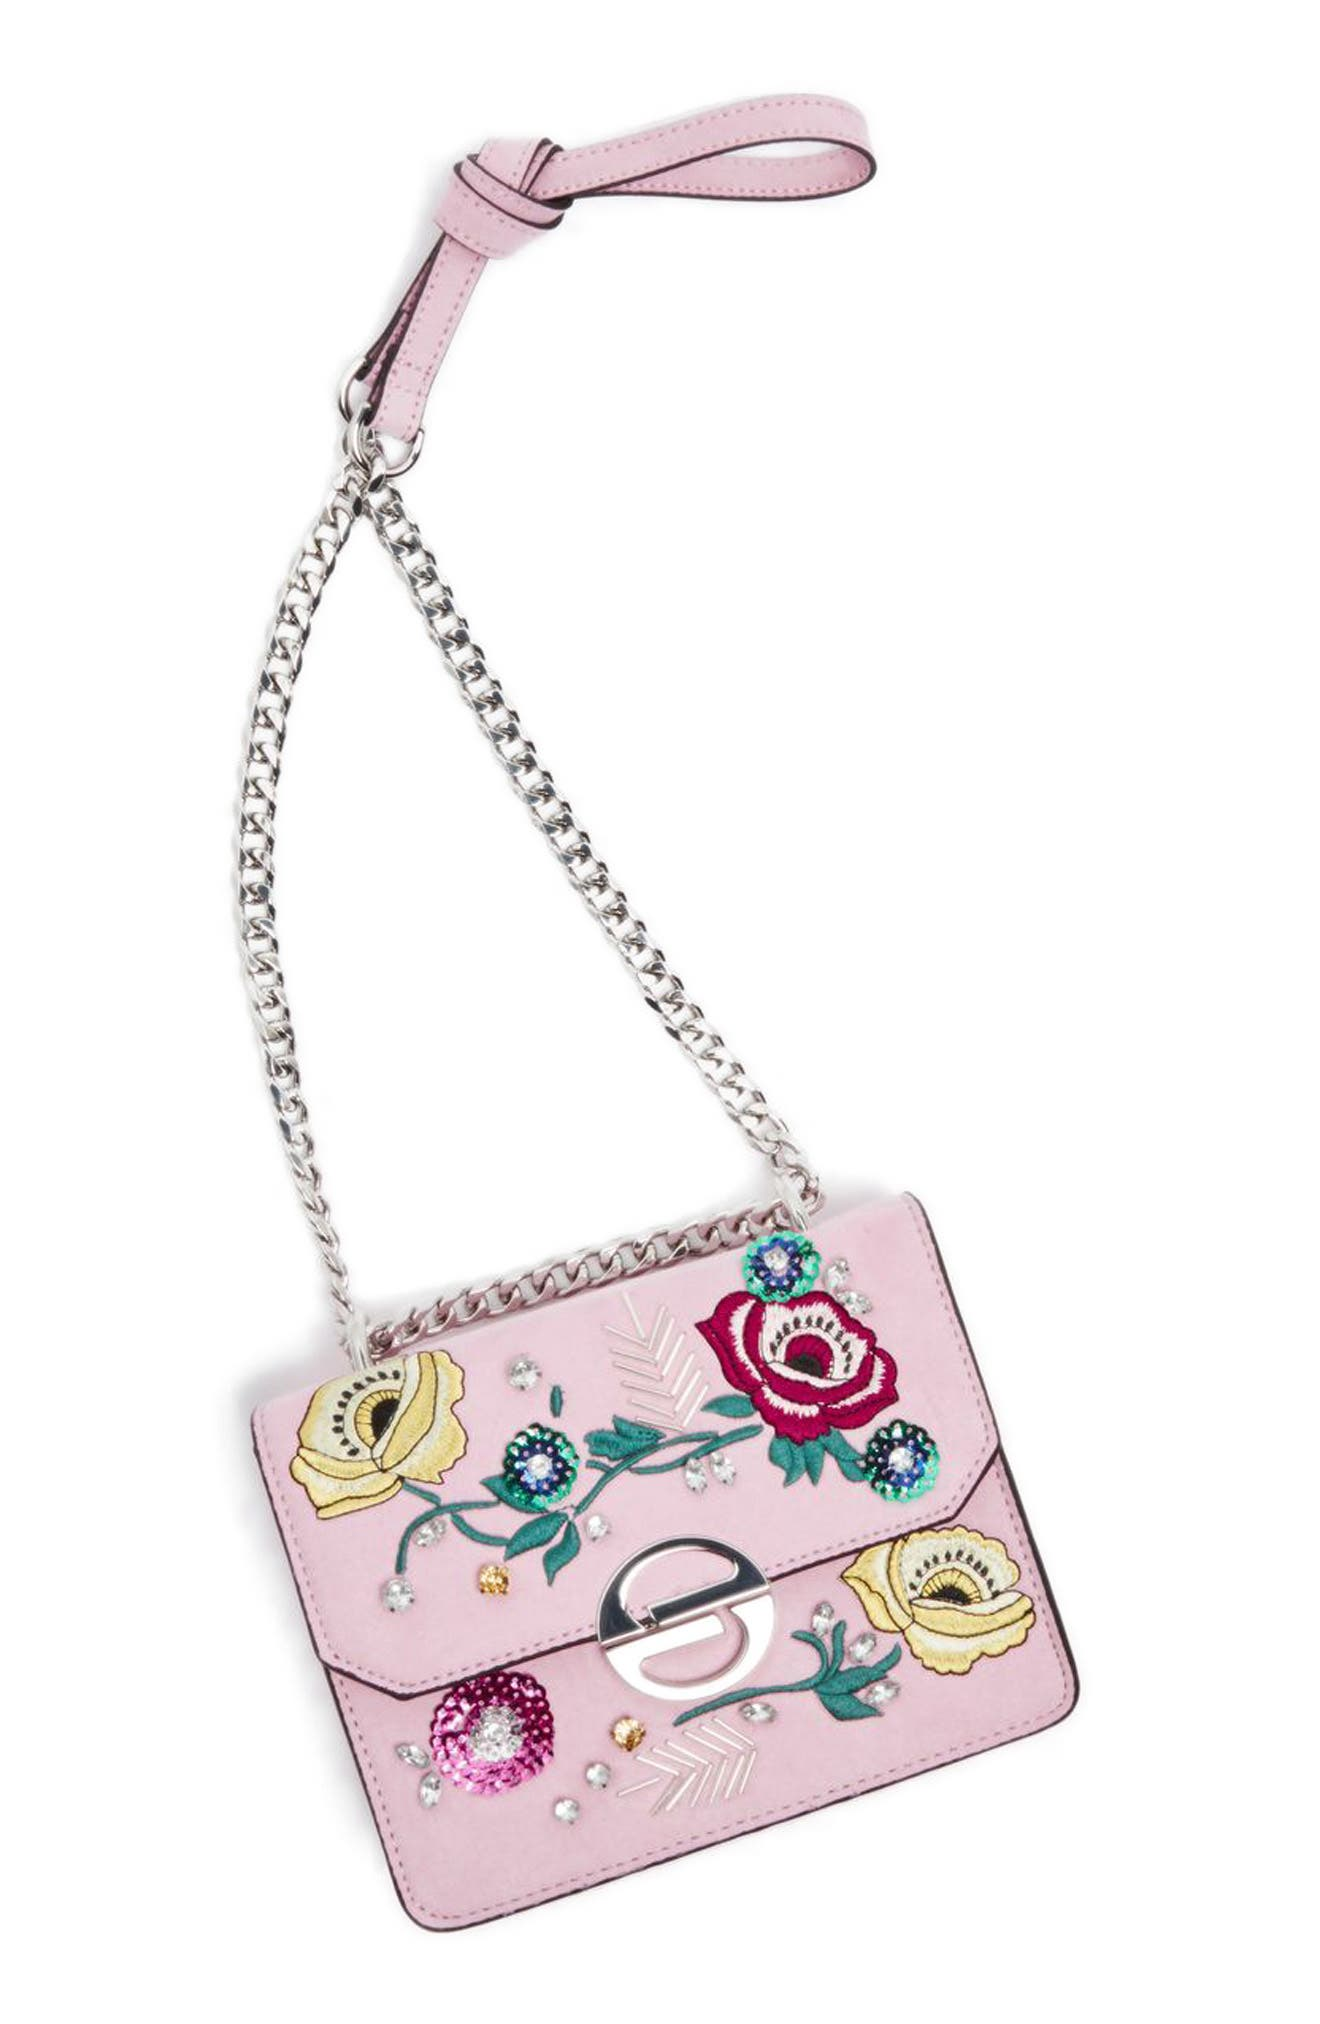 Topshop Embellished Faux Suede Crossbody Bag